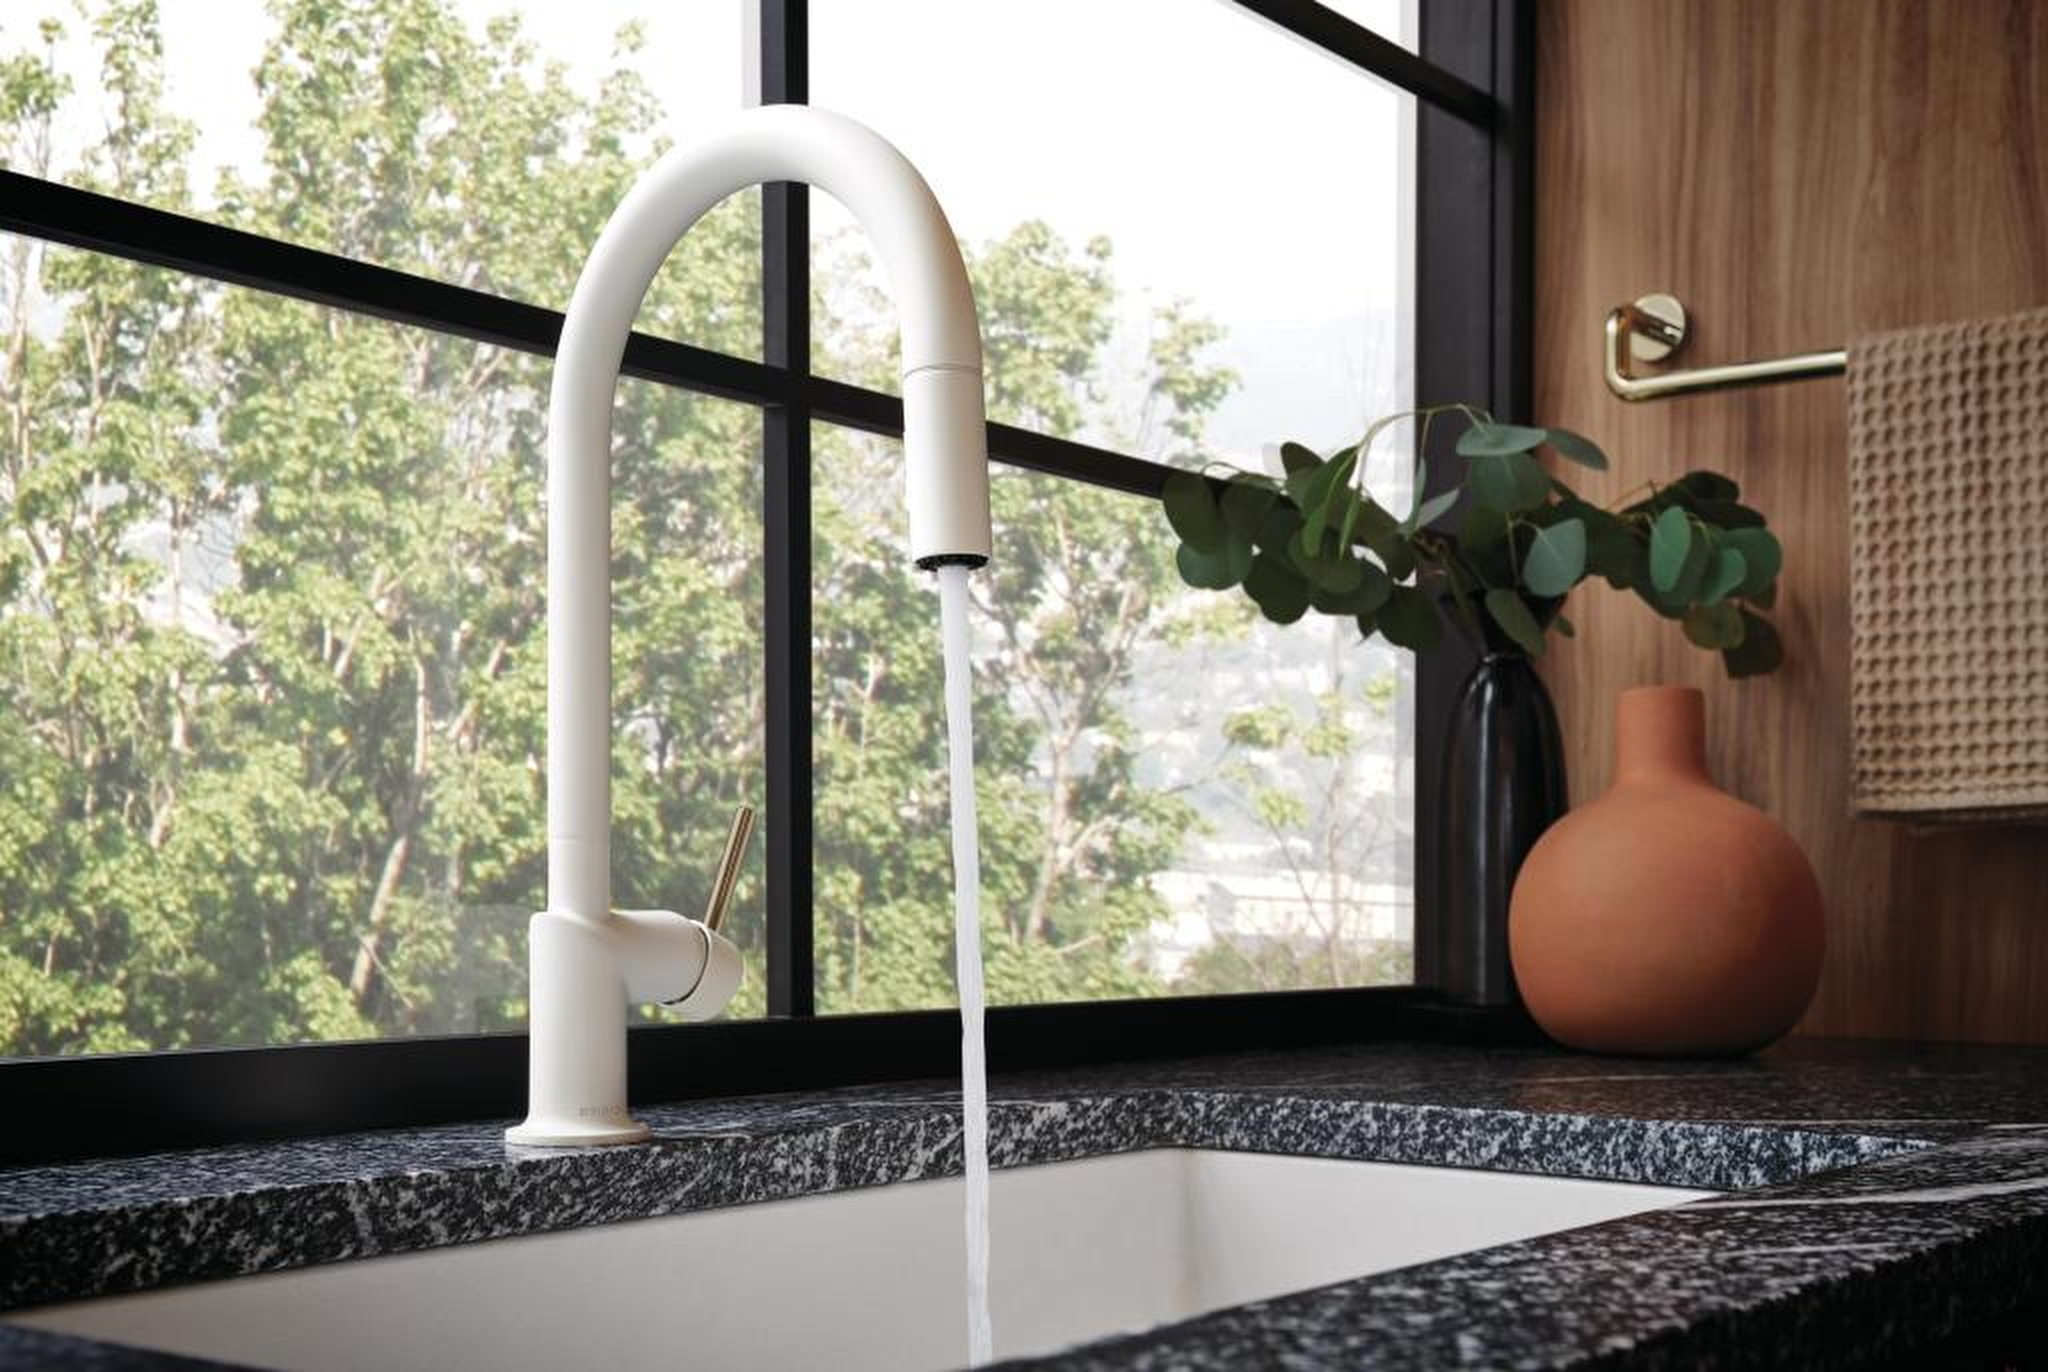 The Jason Wu for Brizo Kitchen Collection debuted earlier this month.